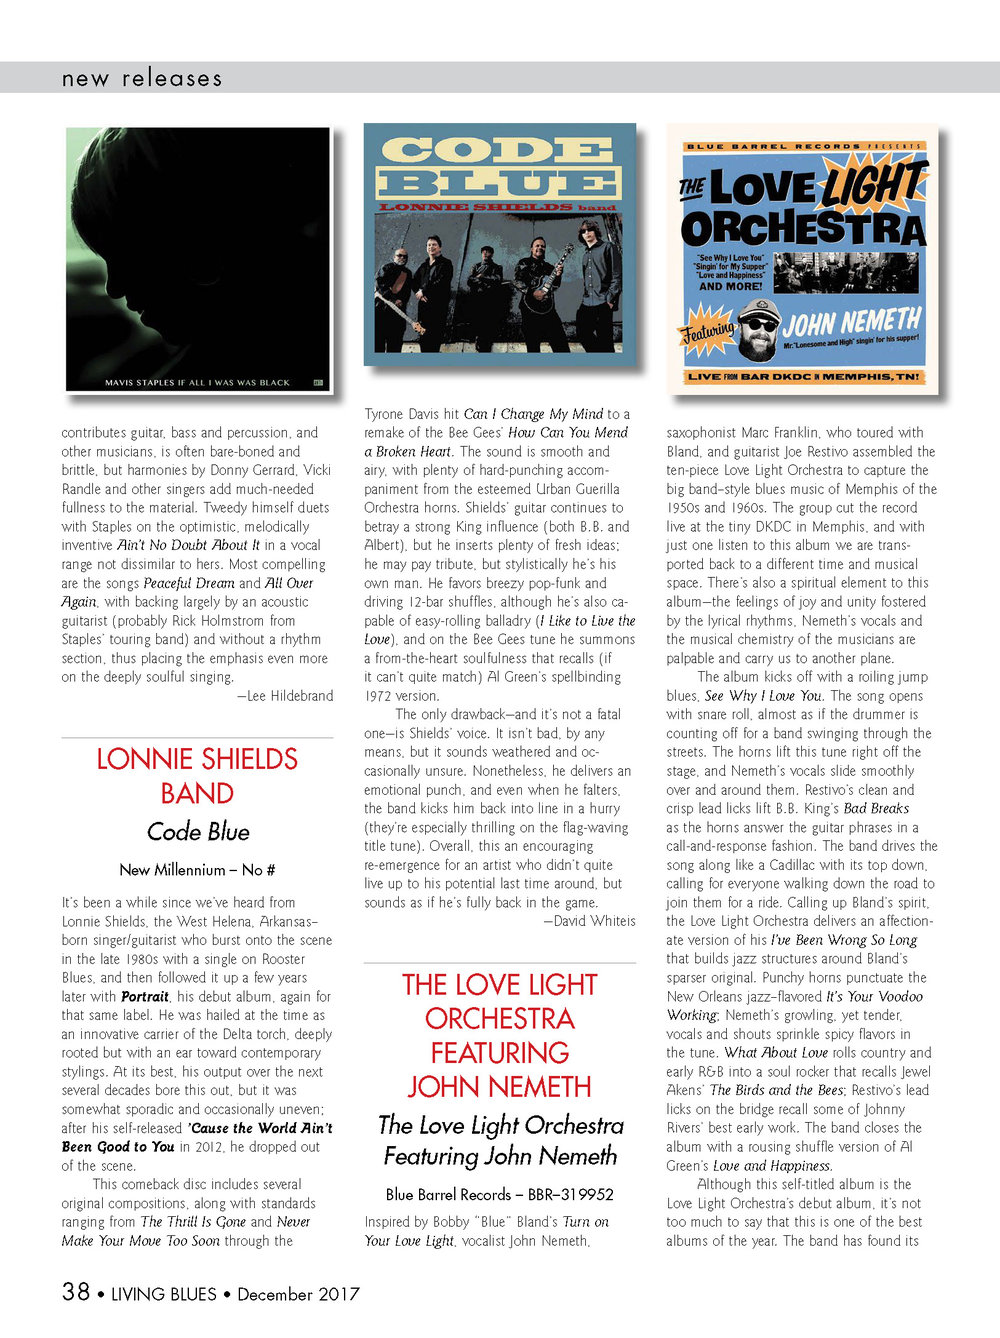 Living Blues December-January LLO Review[2]_Page_2.jpg